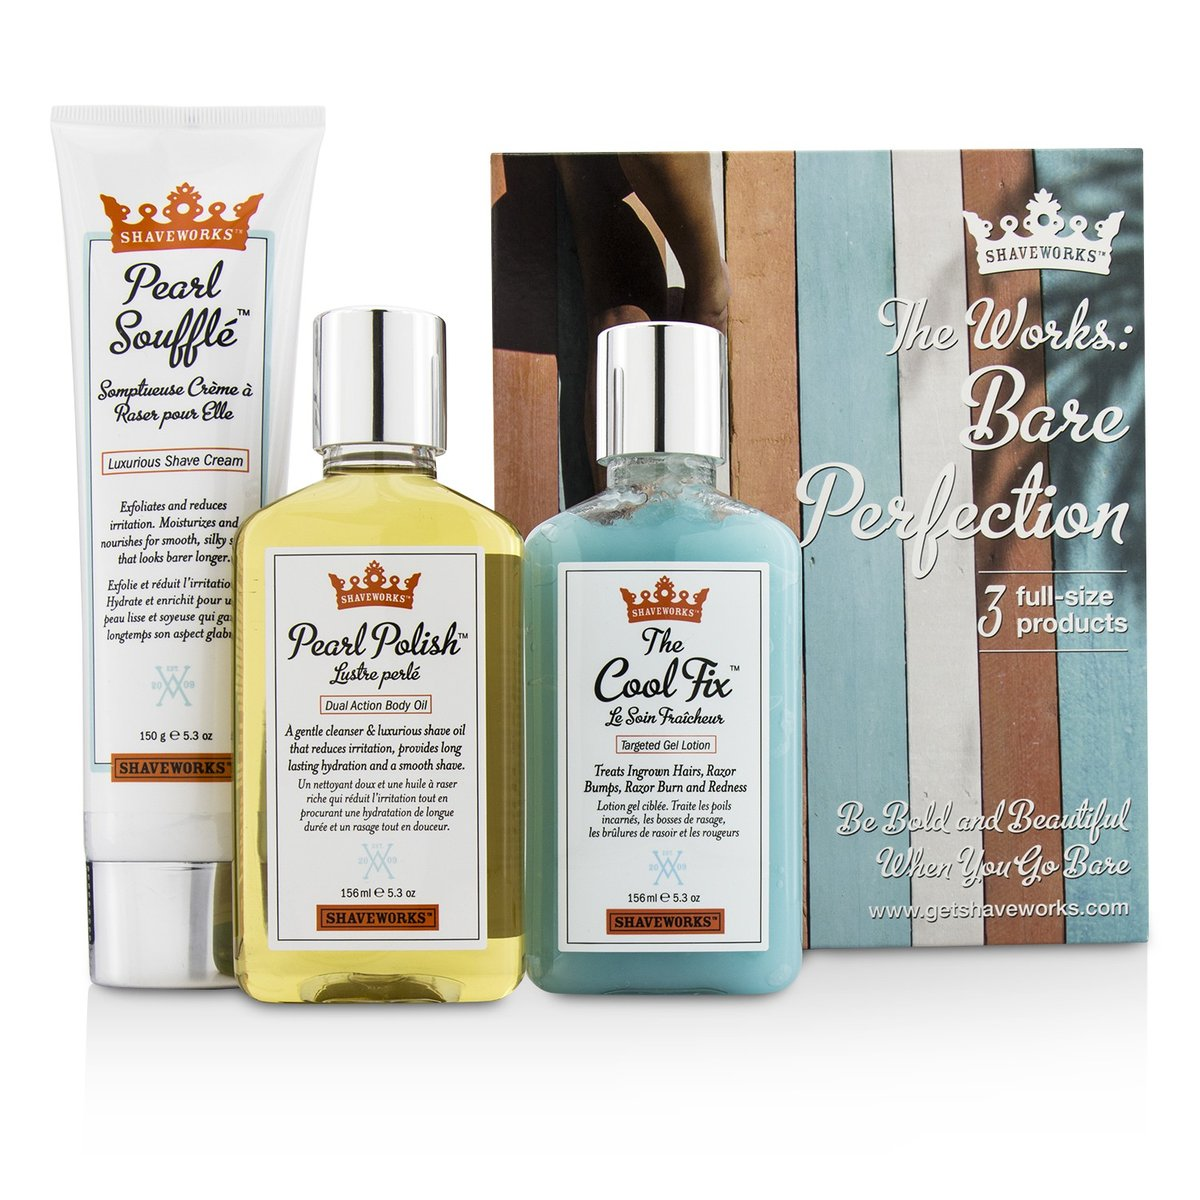 156ml Shaveworks Pearl Polish Dual Action Body Oil Cleanser & Shaving Oil